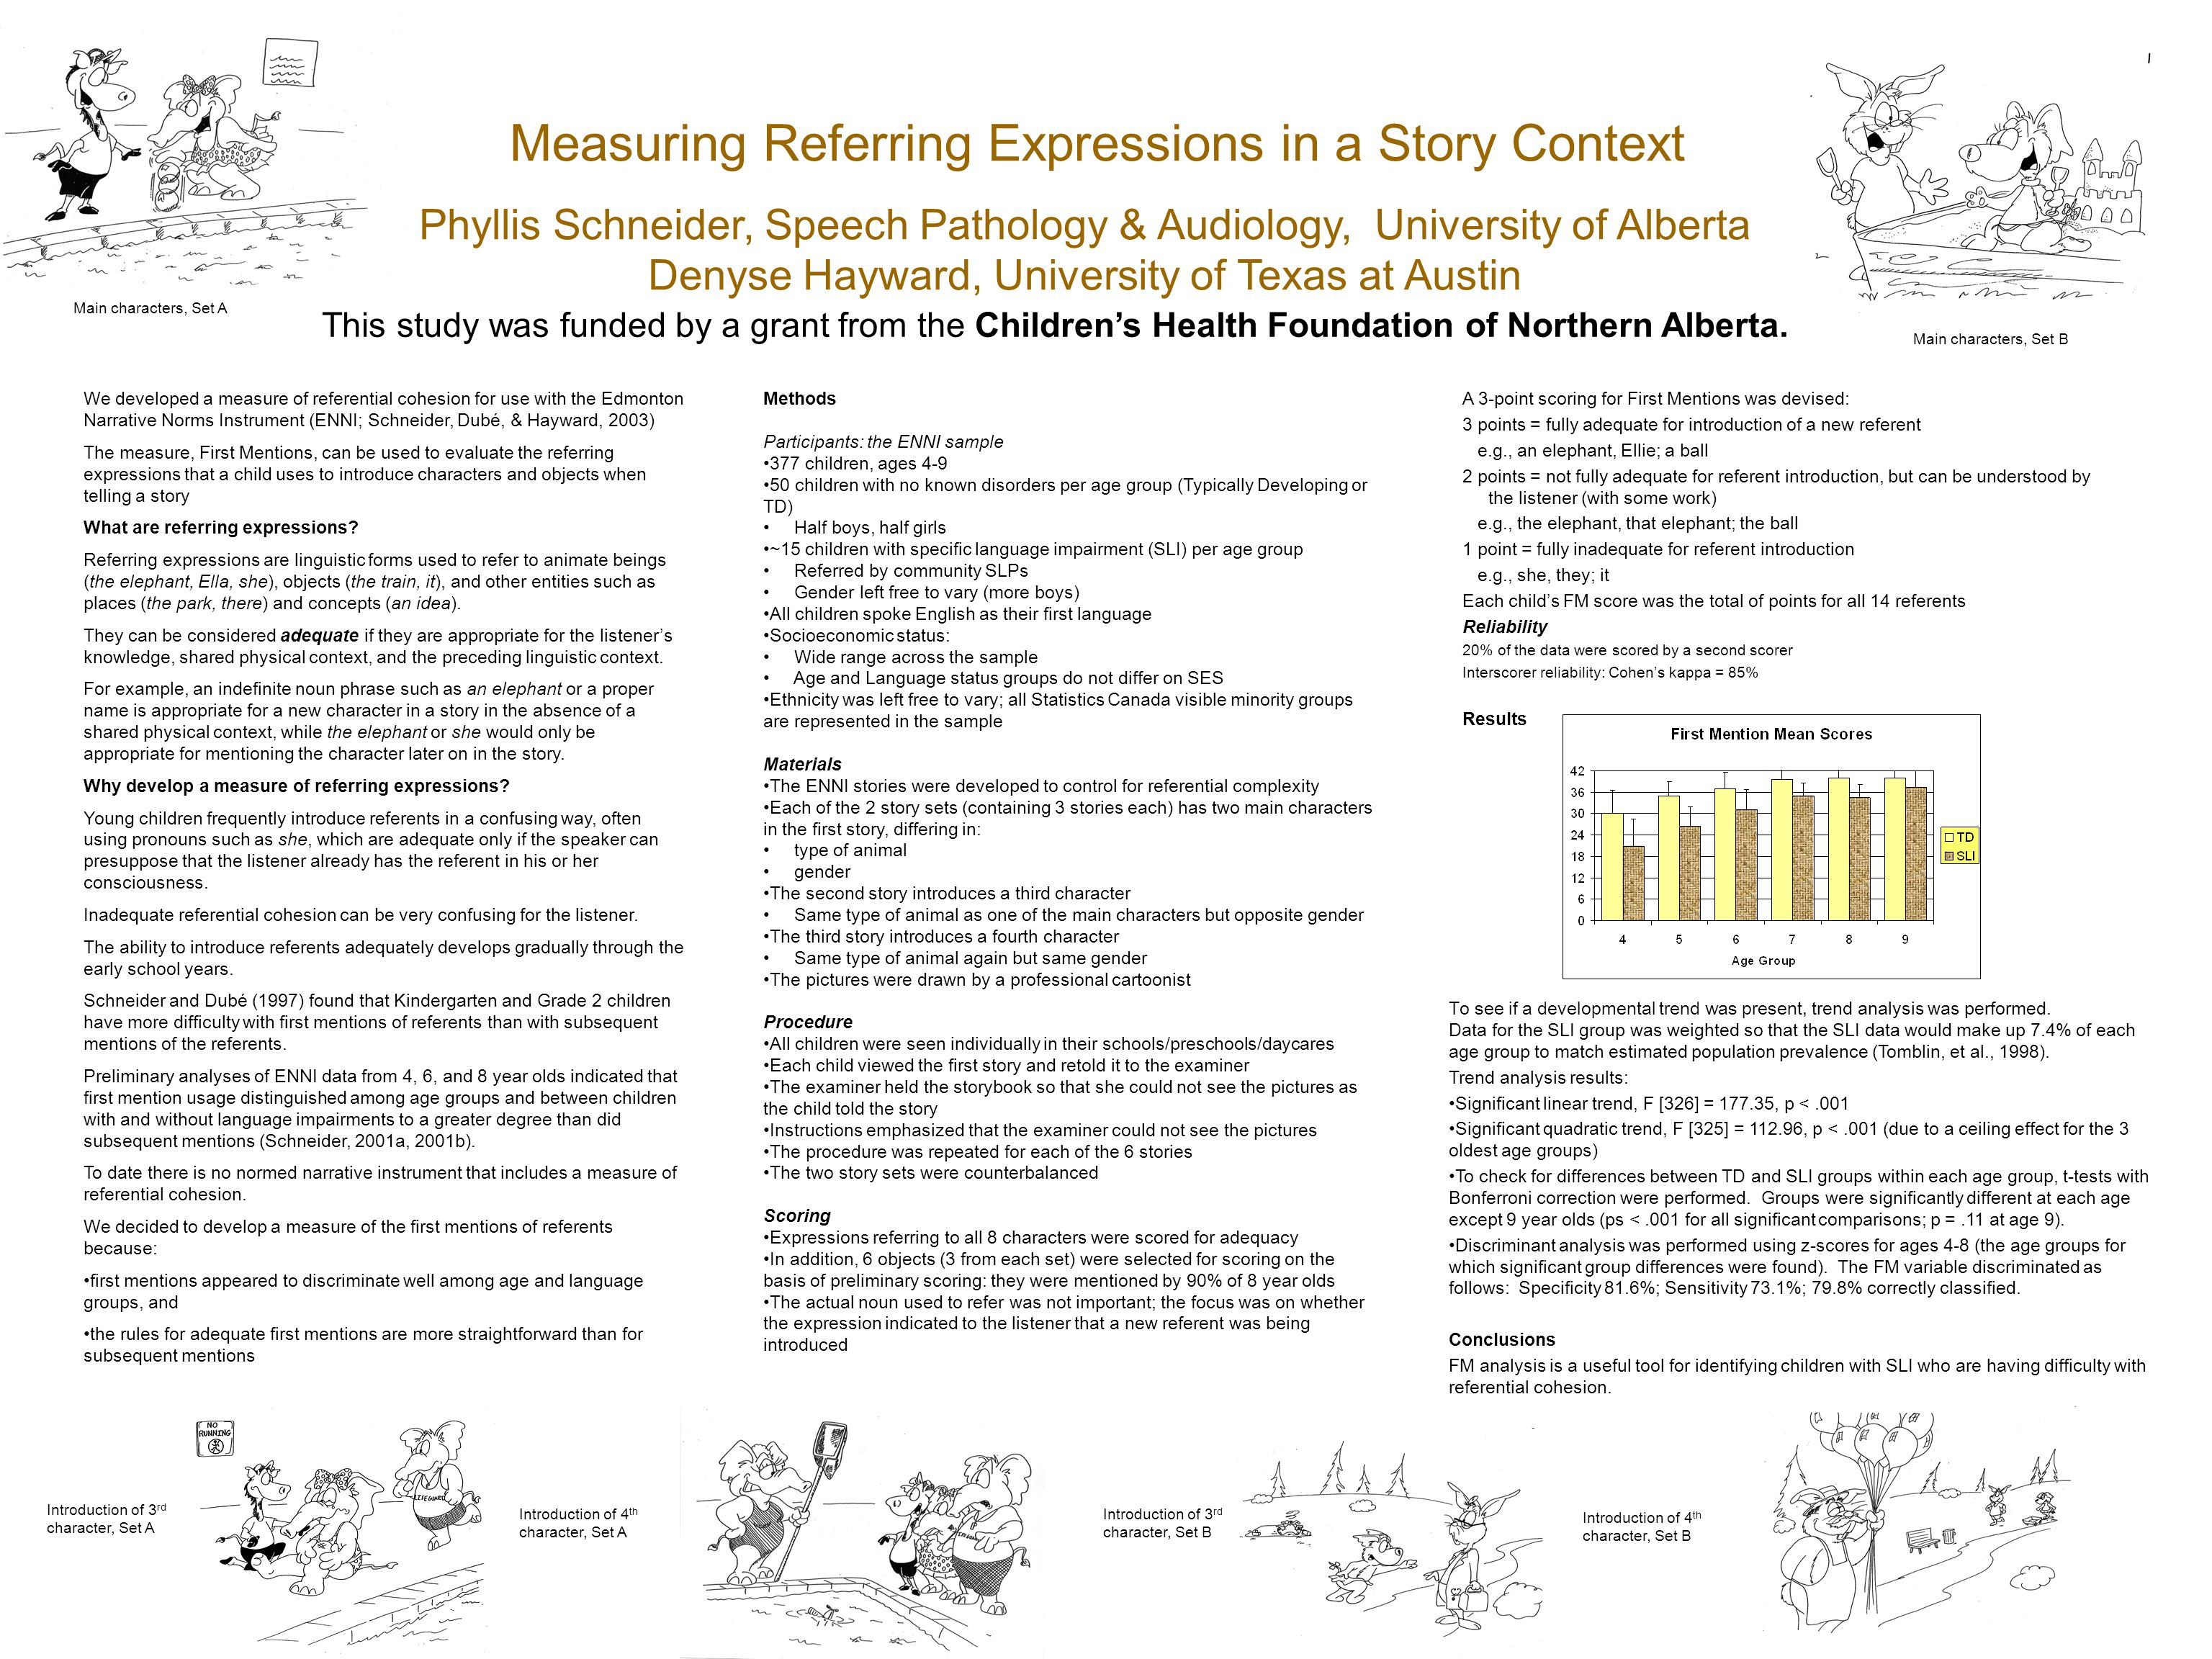 Measuring Referring Expressions in a Story Context Phyllis Schneider, Speech Pathology & Audiology, University of Alberta Denyse Hayward, University o